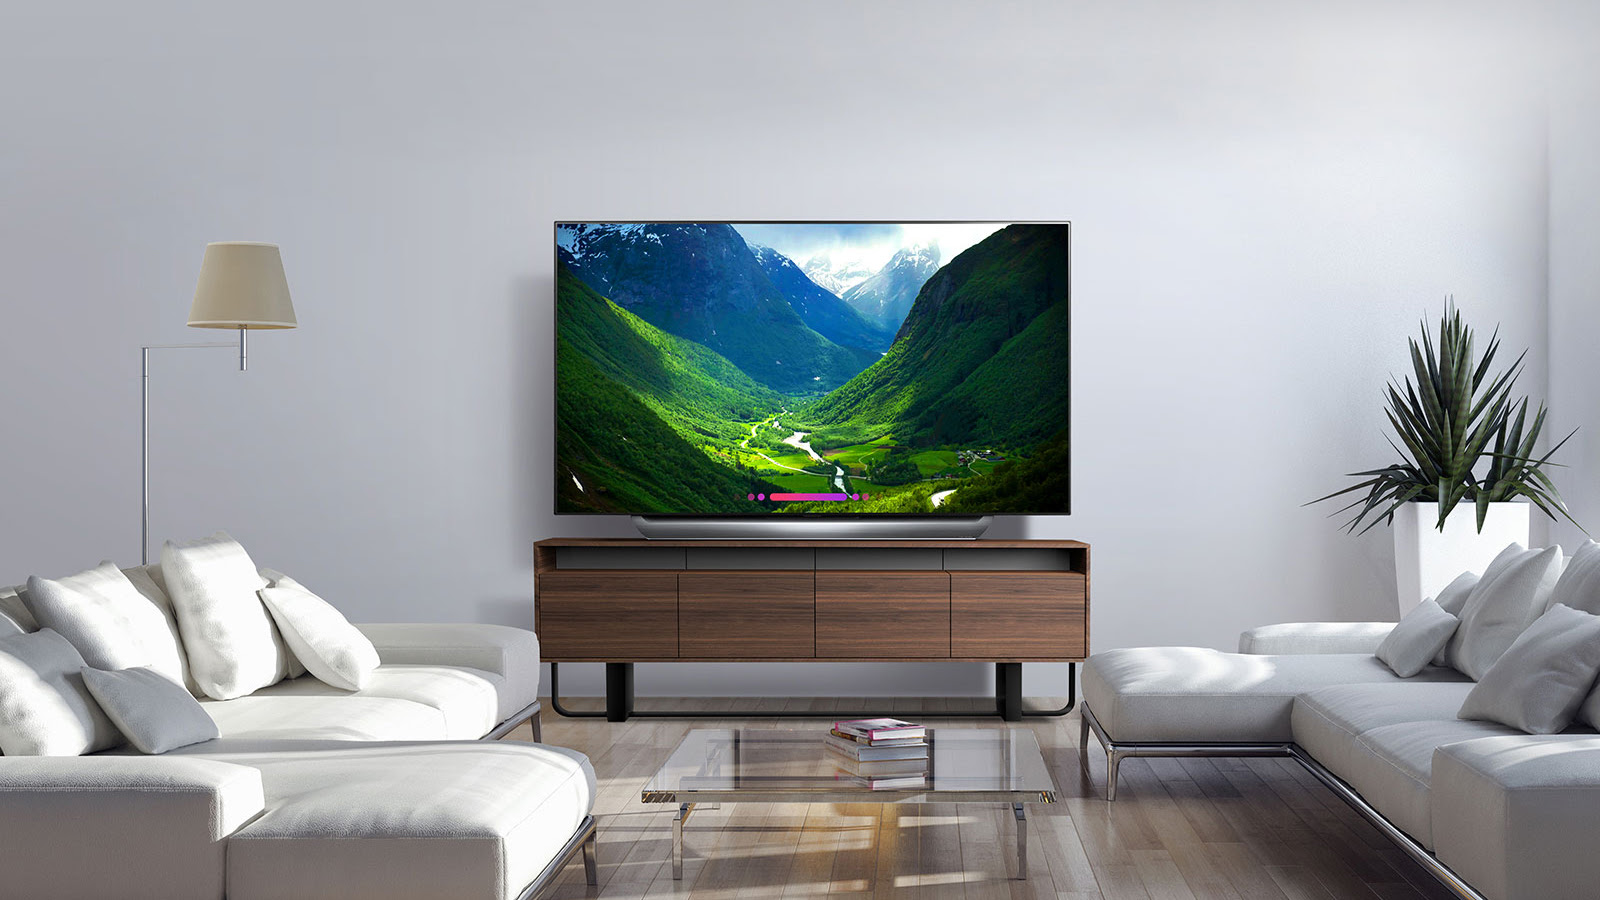 Best 55-inch 4K TVs 2019: the best medium-sized screens for any budget